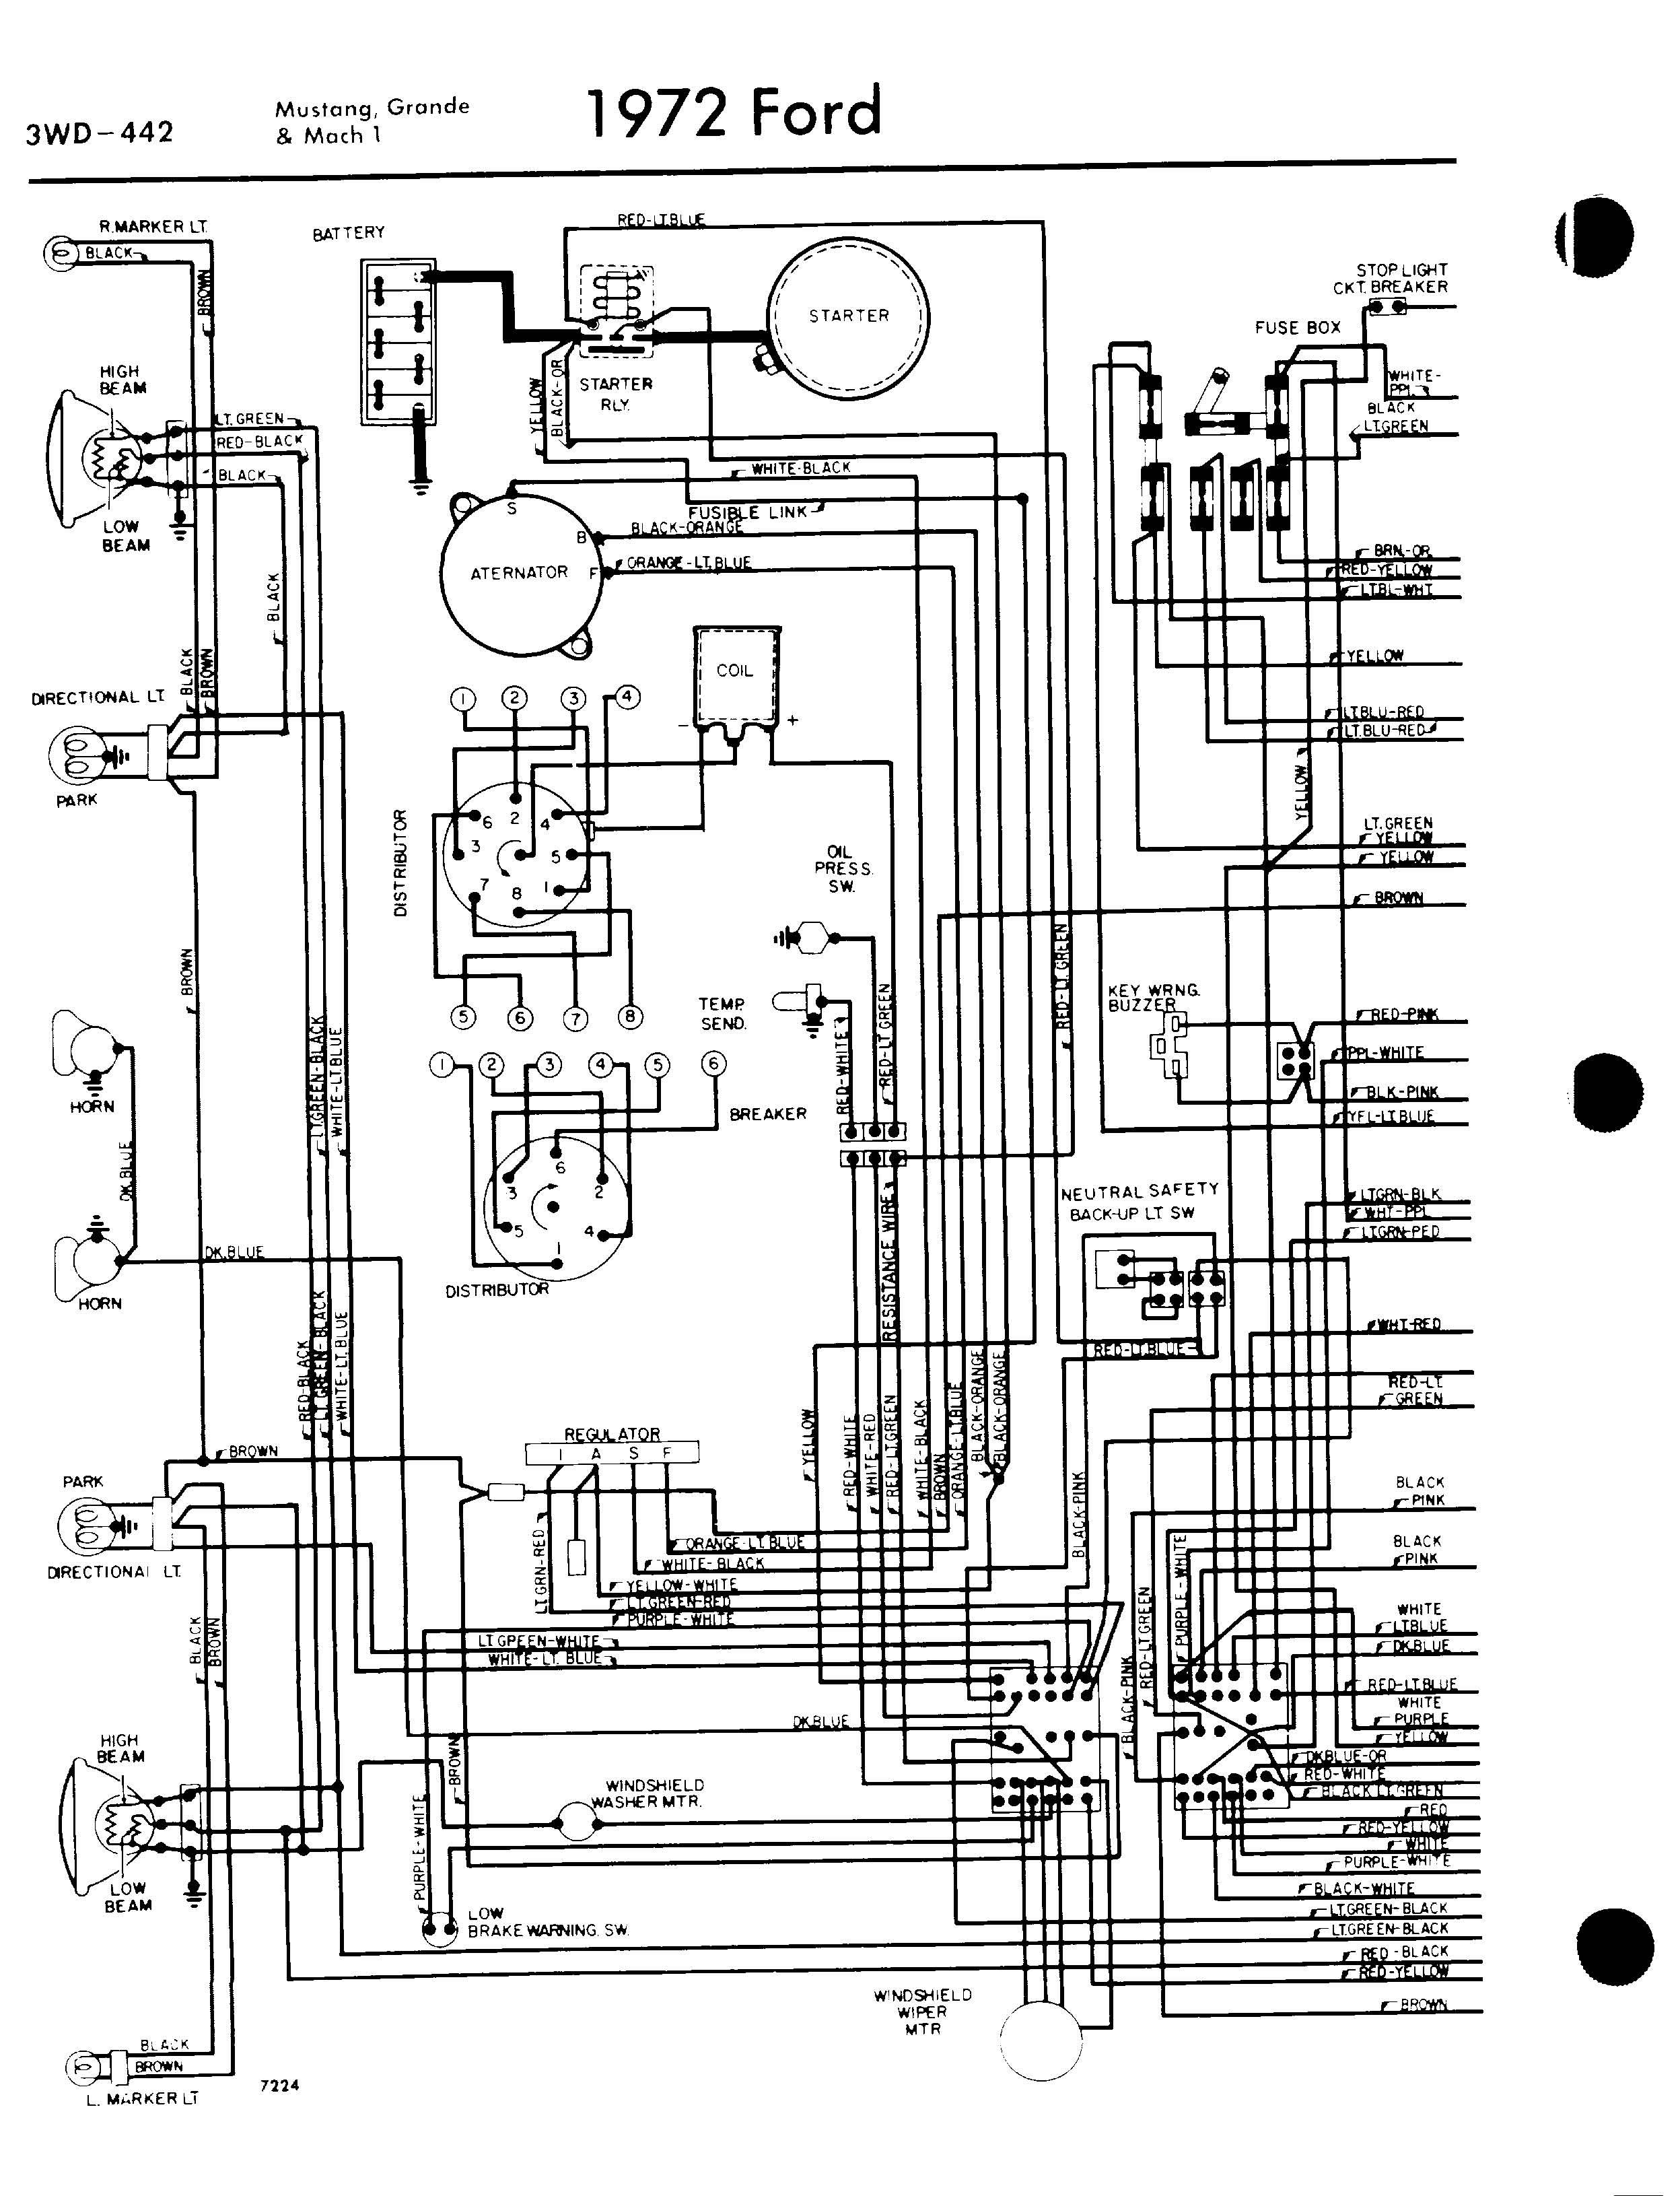 72 mach1 alternator wire harness diagram  Yahoo Search Results Yahoo Image Search Results